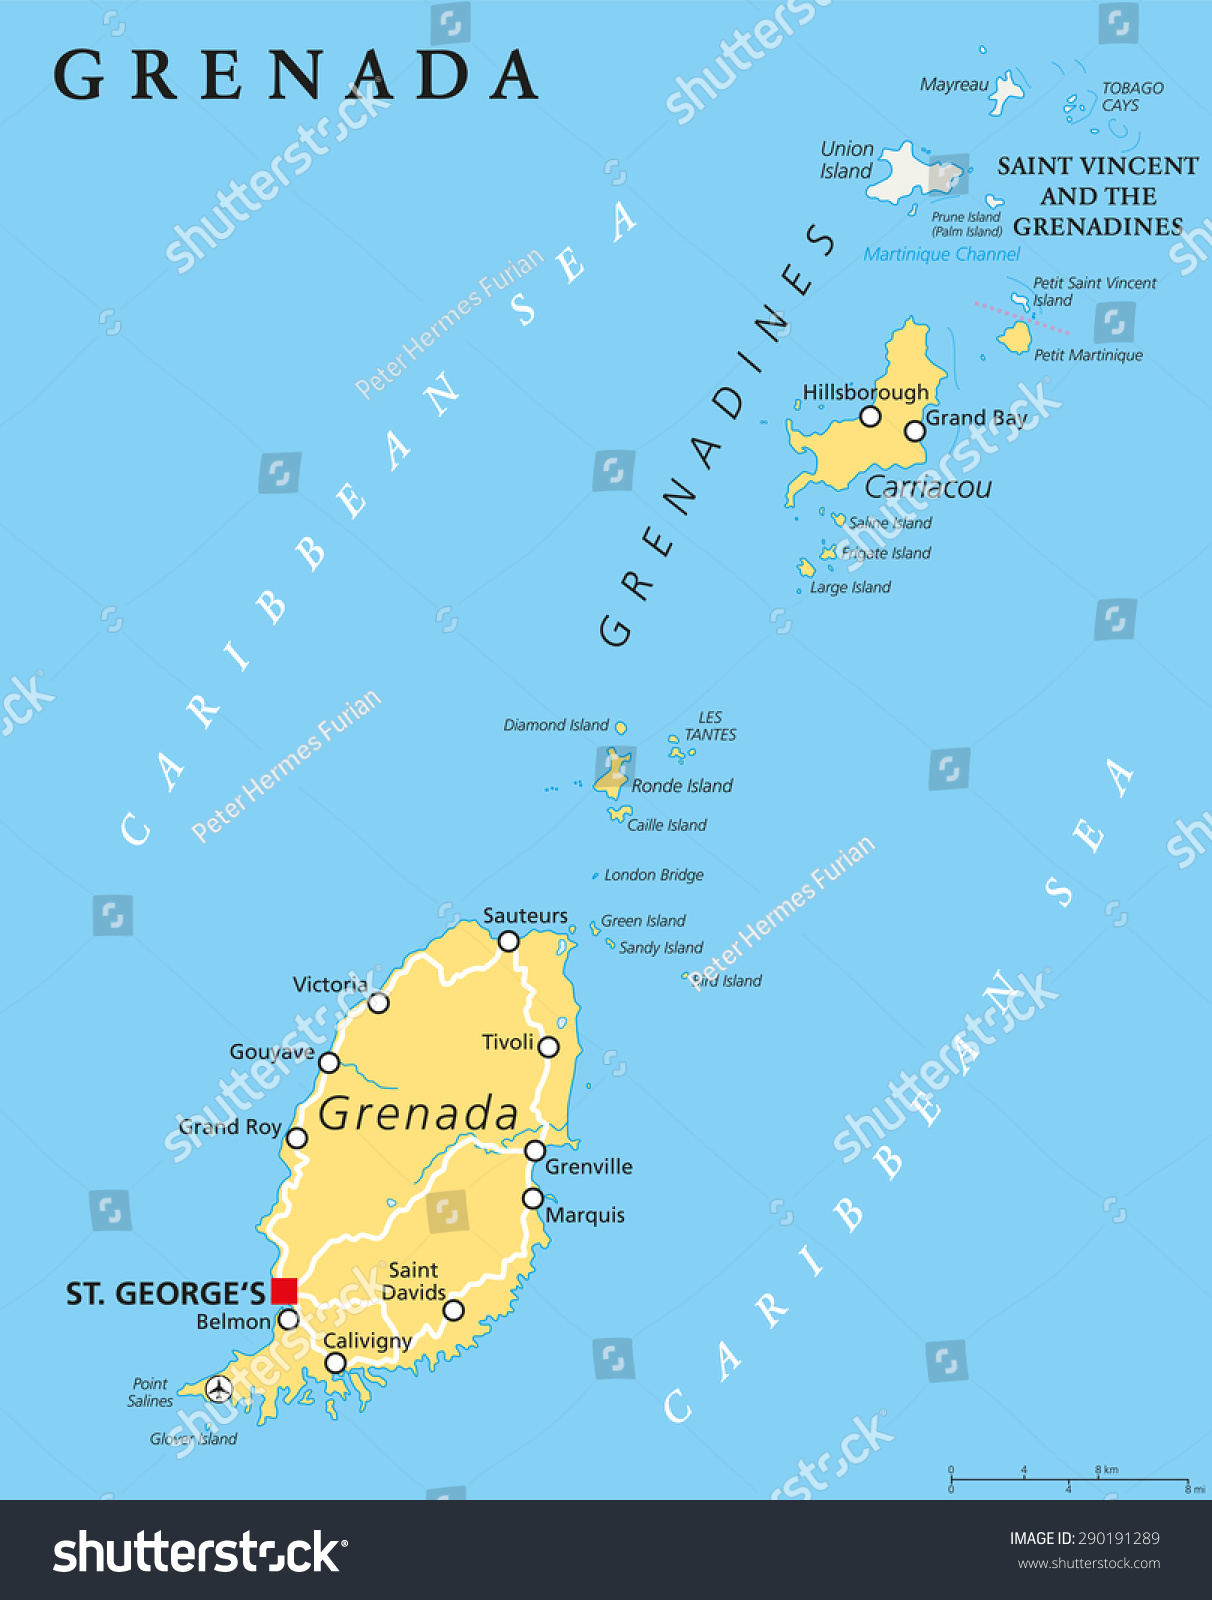 Grenada Political Map With Capital Contact Google Maps - Road map of grenada island